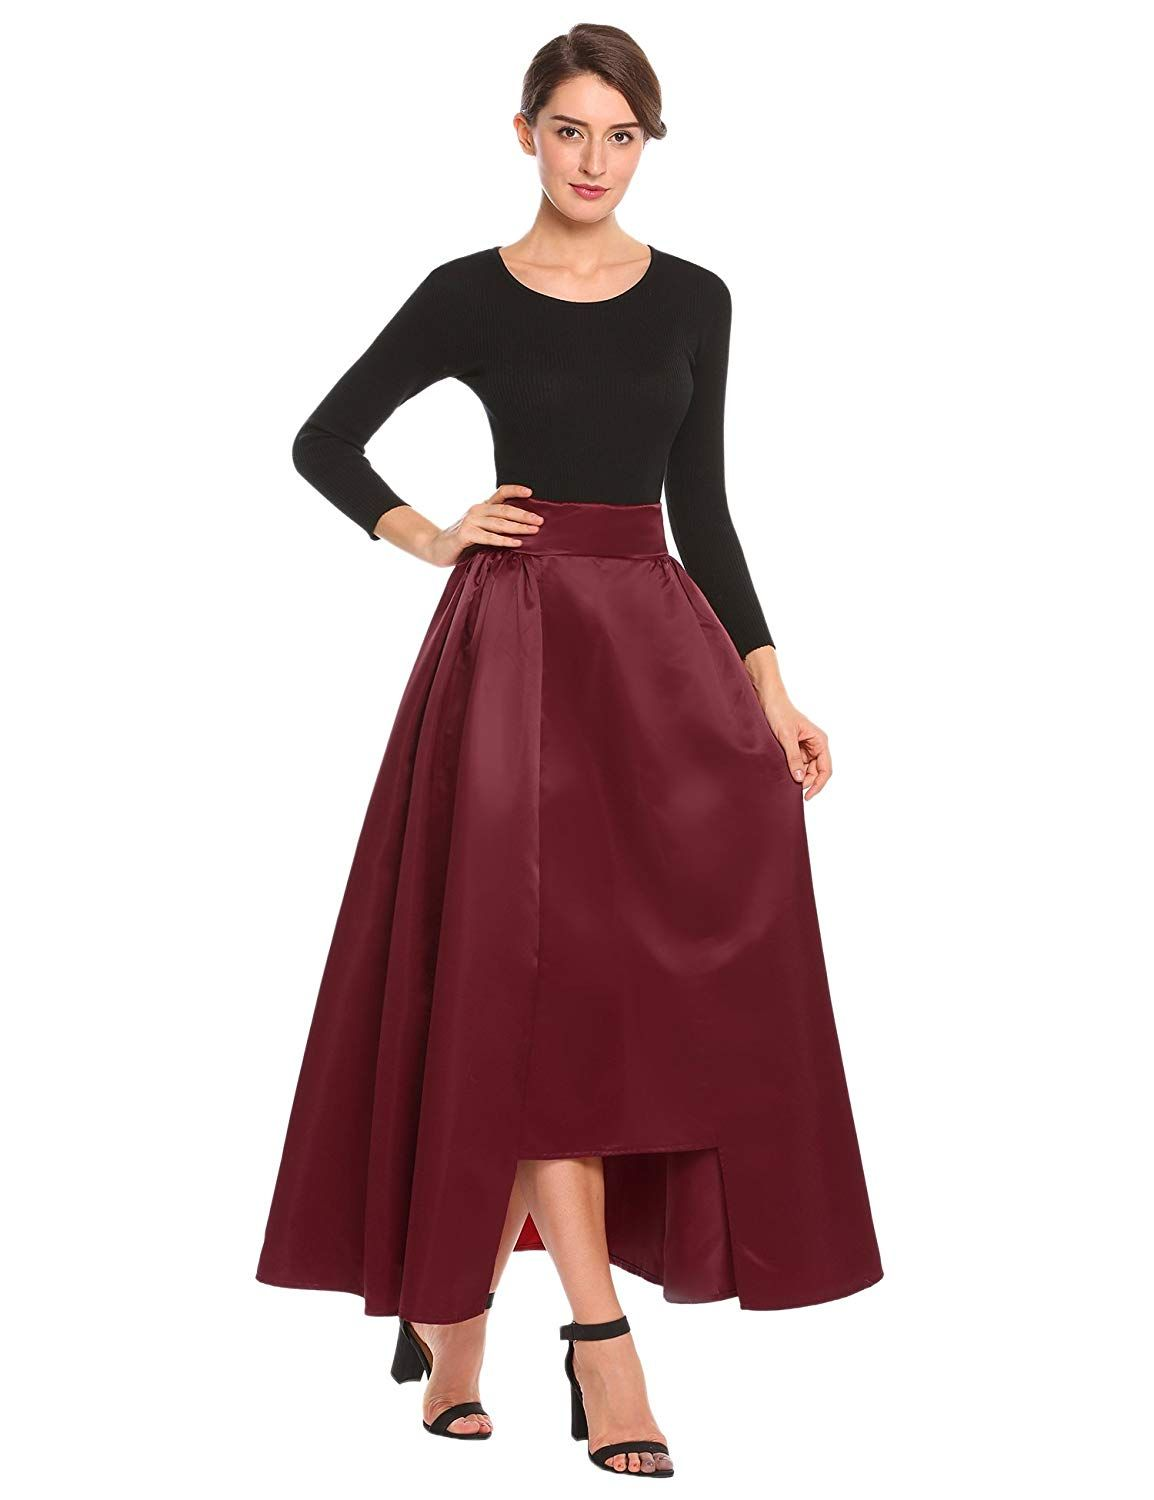 f217cc5ce Long Maxi Skirts · Womens Fashion · HIGH QUALITY MATERIALS--- Smooth fabric,  soft and breathable, silky, no